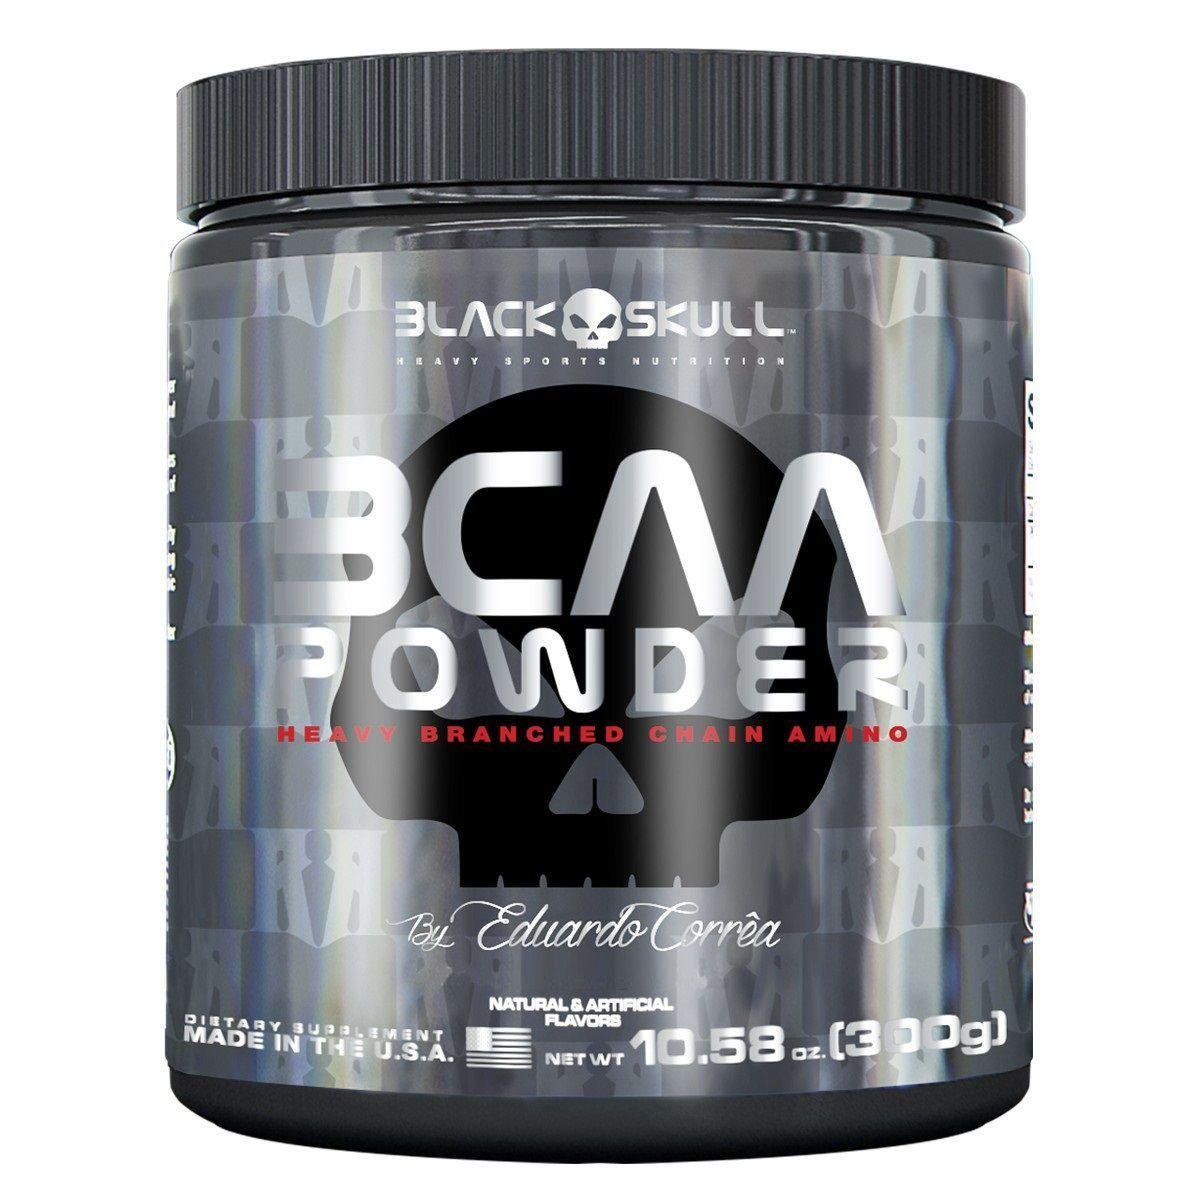 3d650448c BCAA Powder 300 g By Eduardo Corrêa - Black Skull